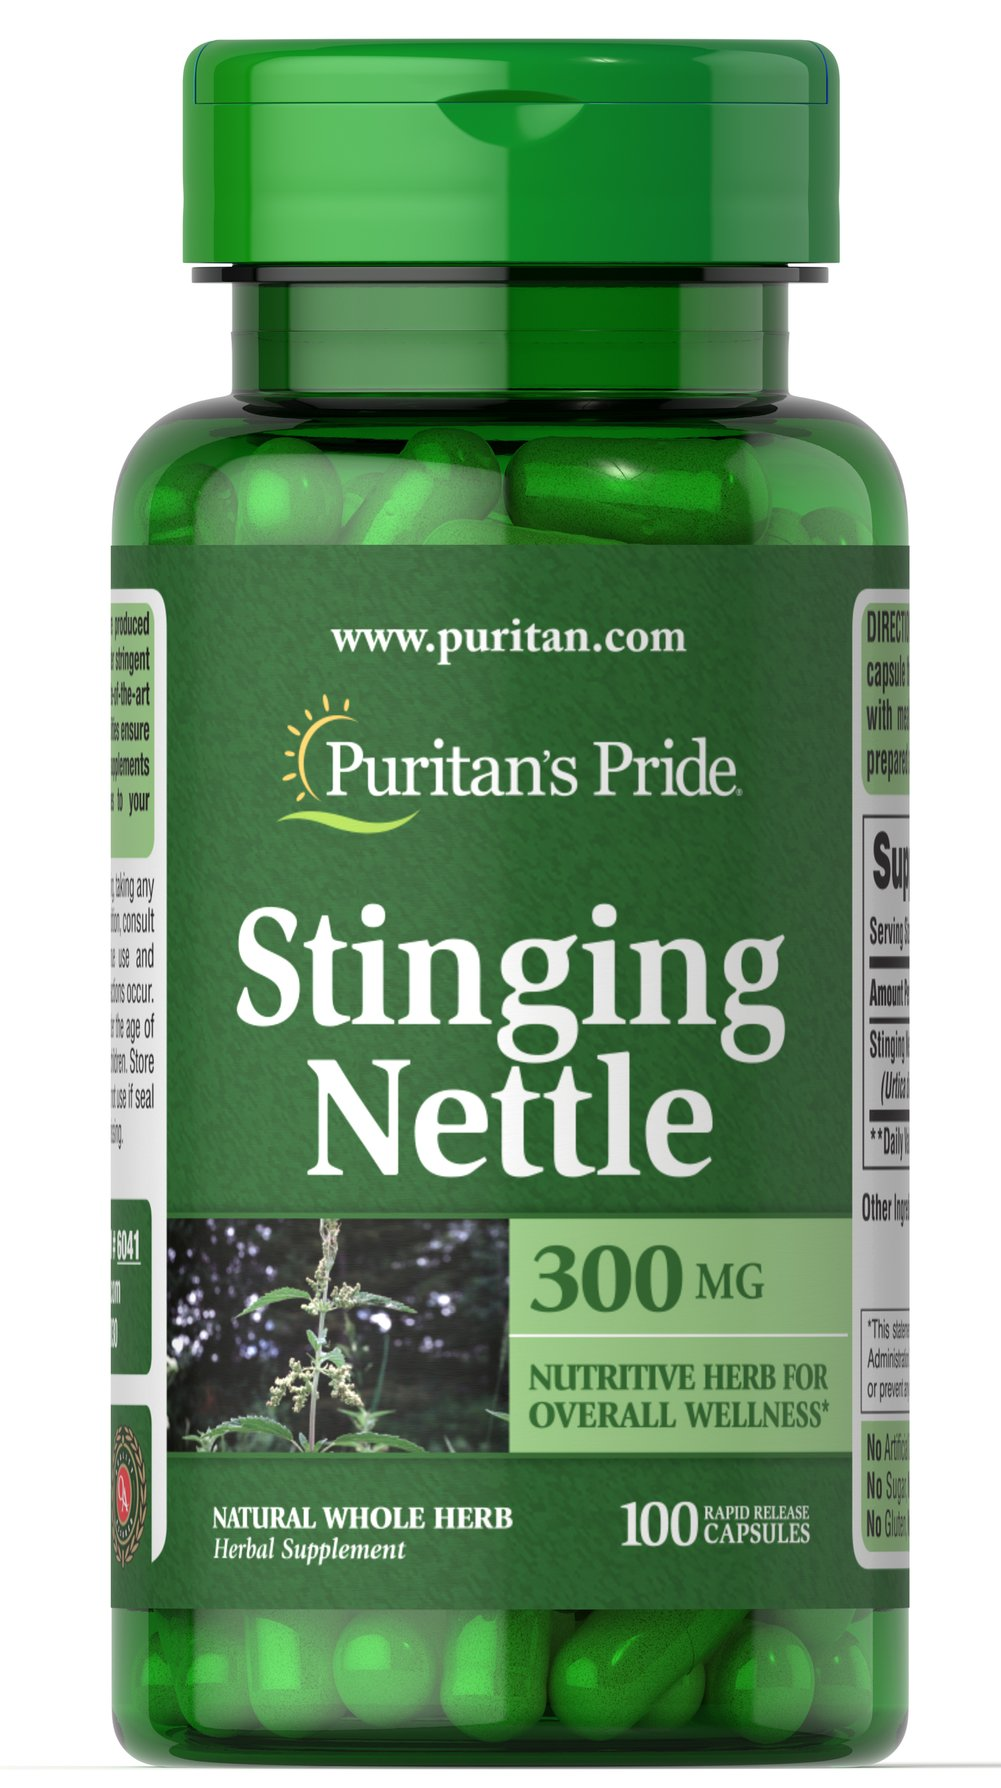 Stinging Nettle 300 mg Thumbnail Alternate Bottle View